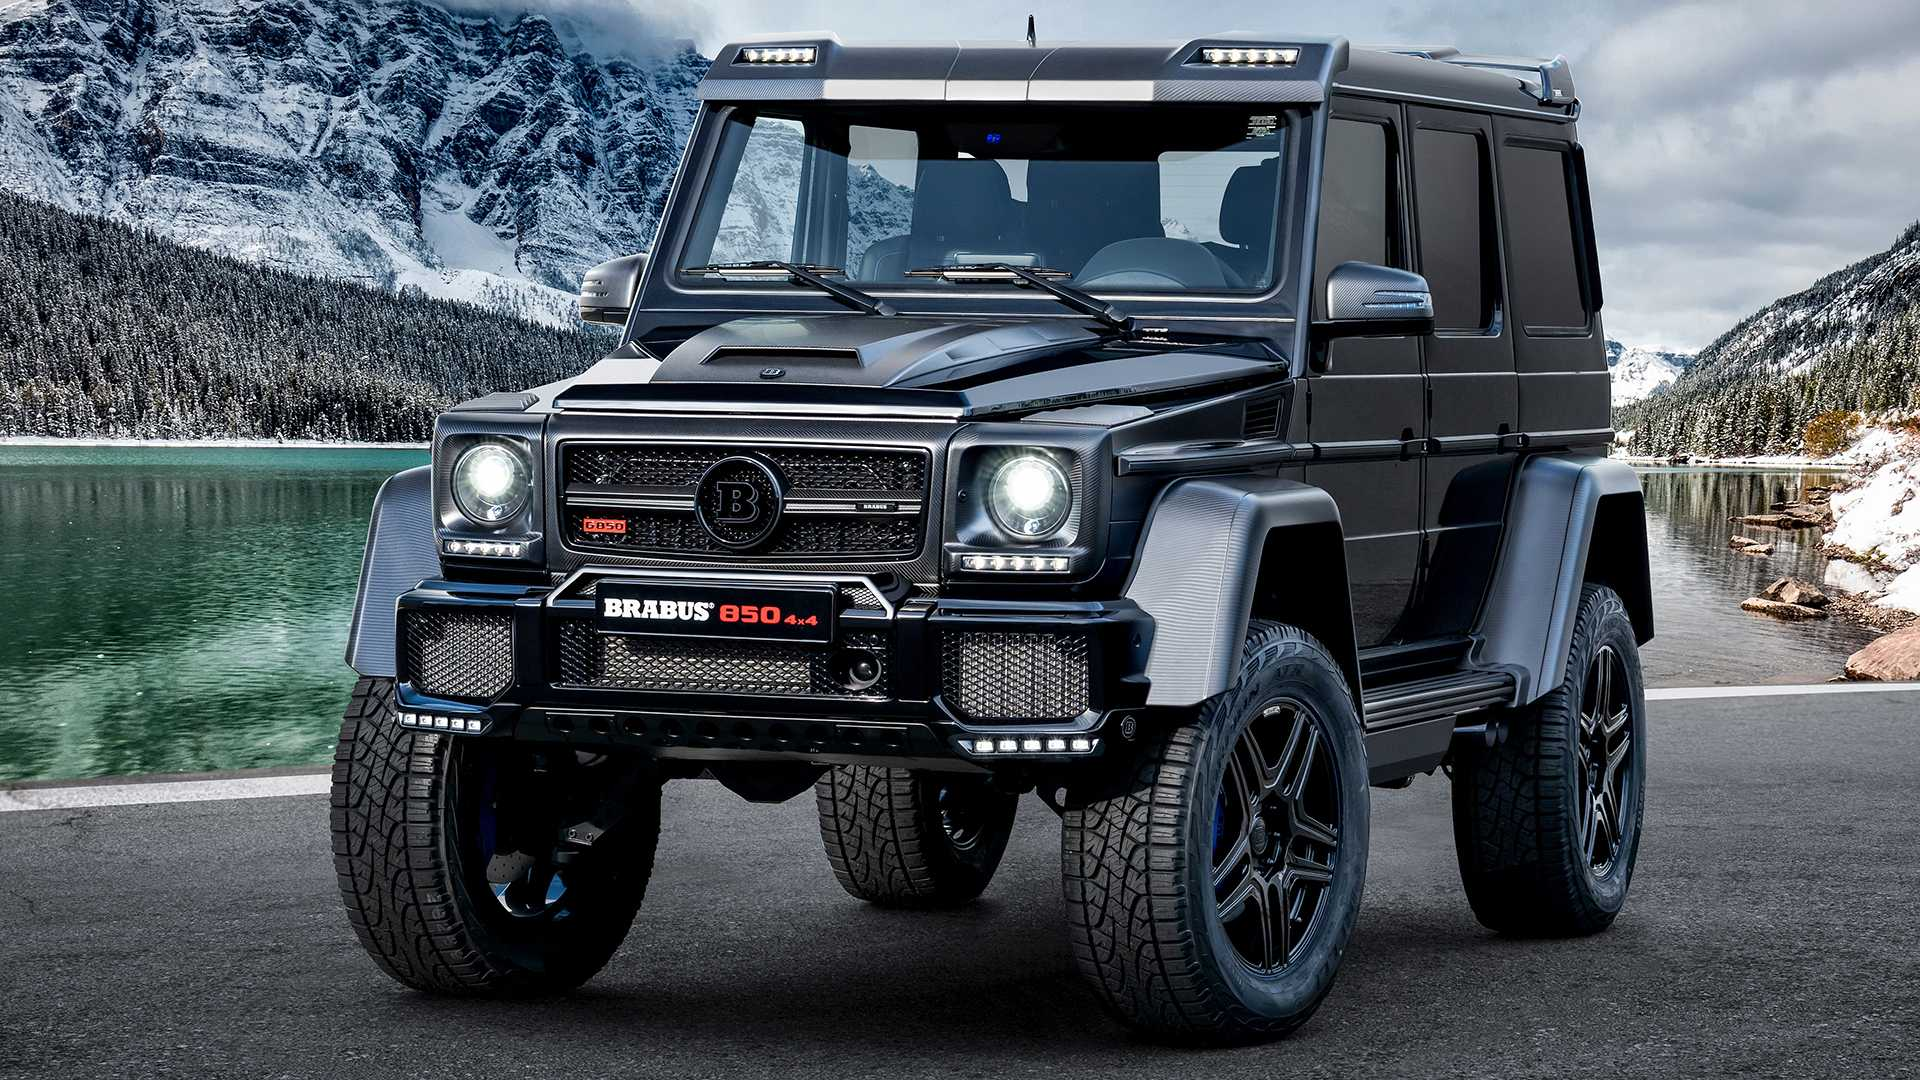 Brabus 850 4x4² Final Edition Gives Old Mercedes G-Class 838 HP